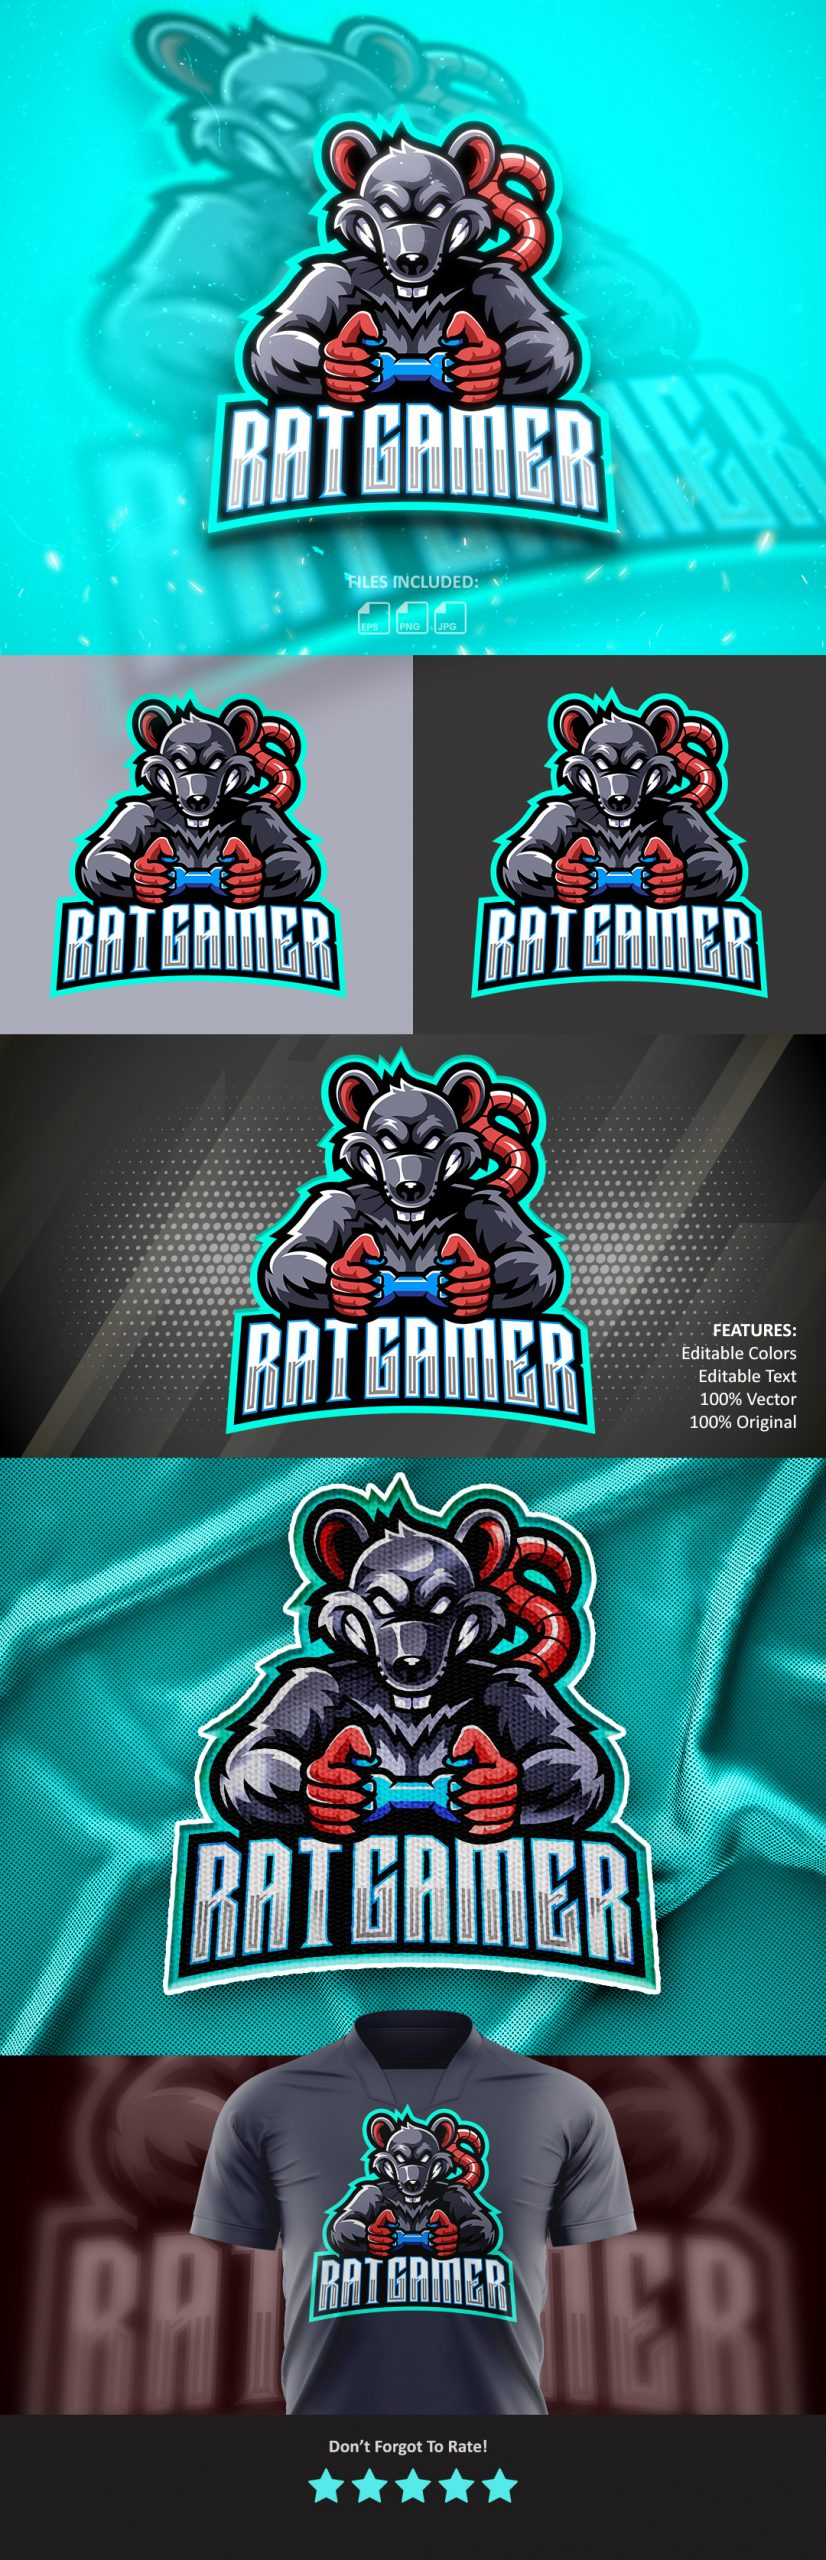 Free-Download-Rat-Gamer-Esports-Mascot-Logo